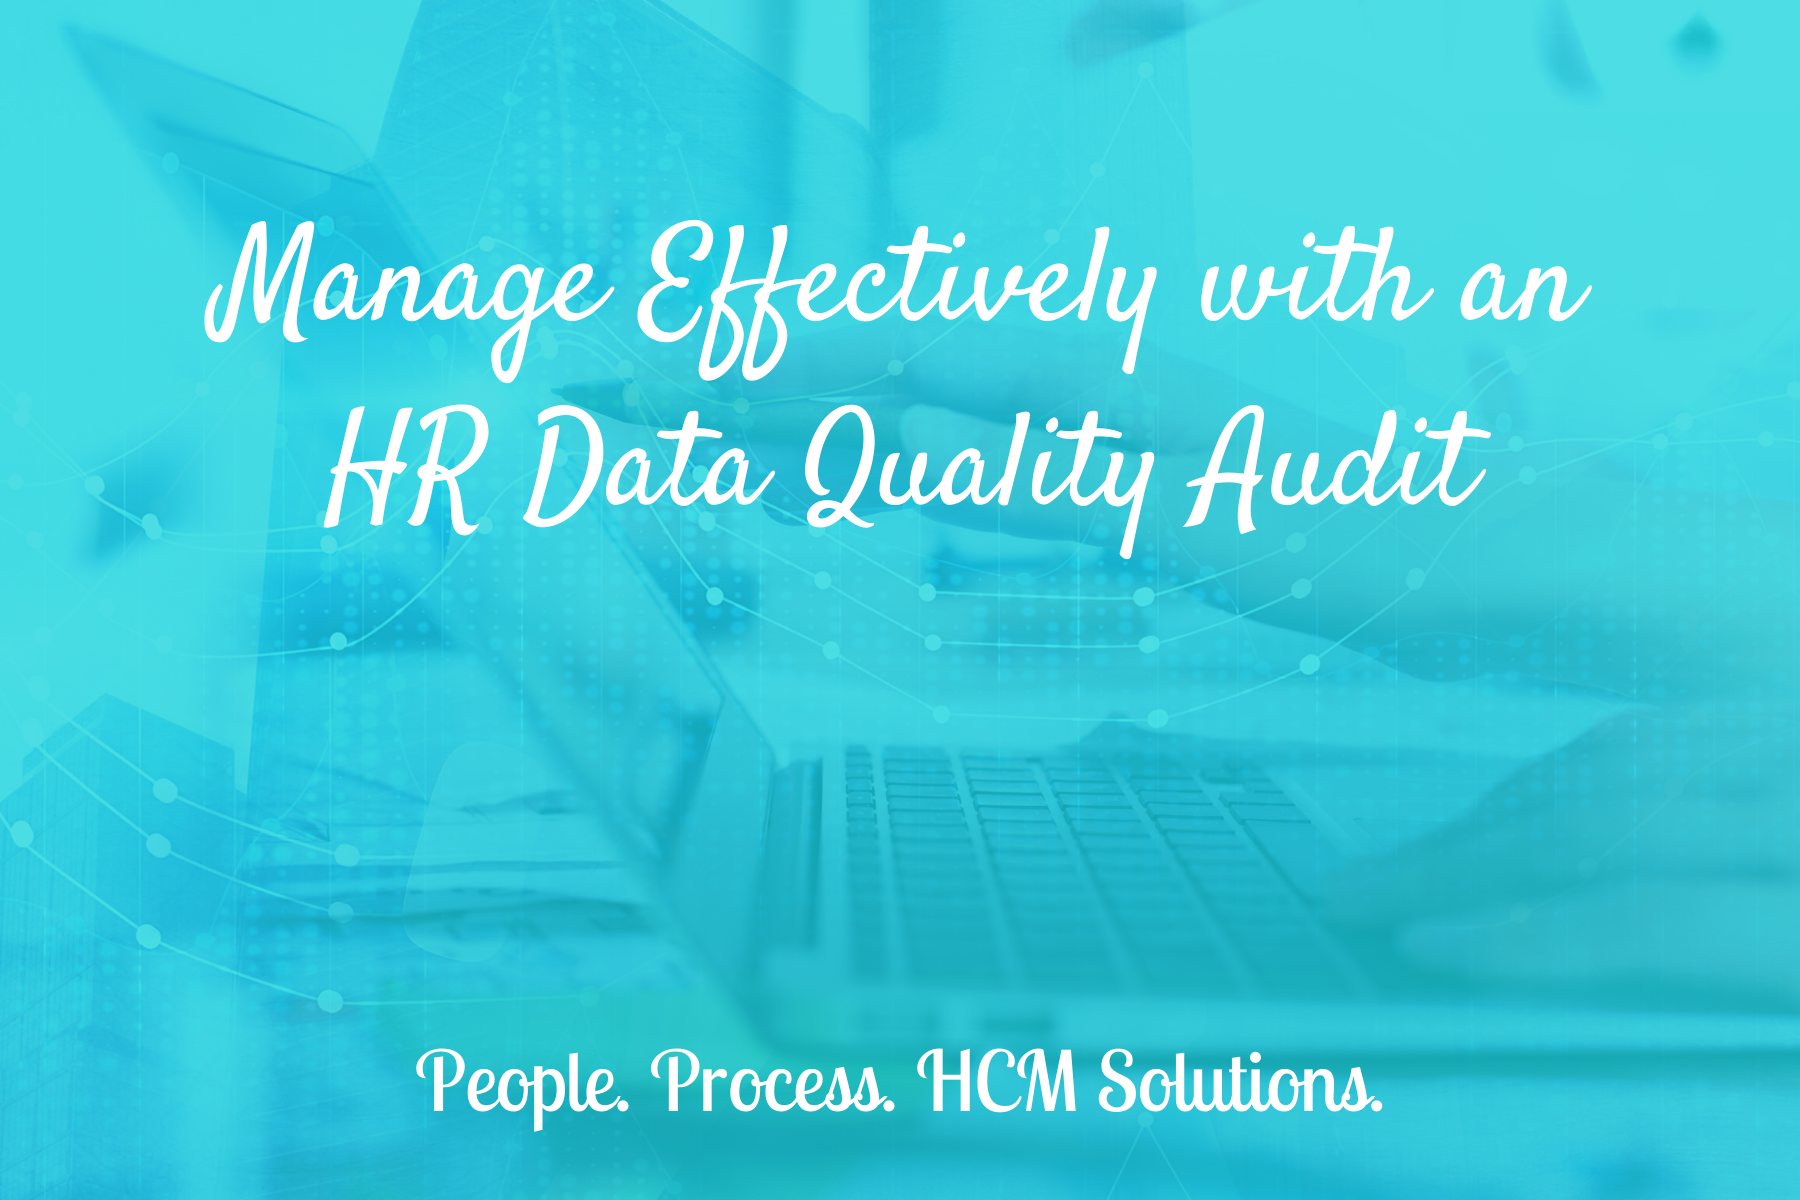 HR Data Quality Audit